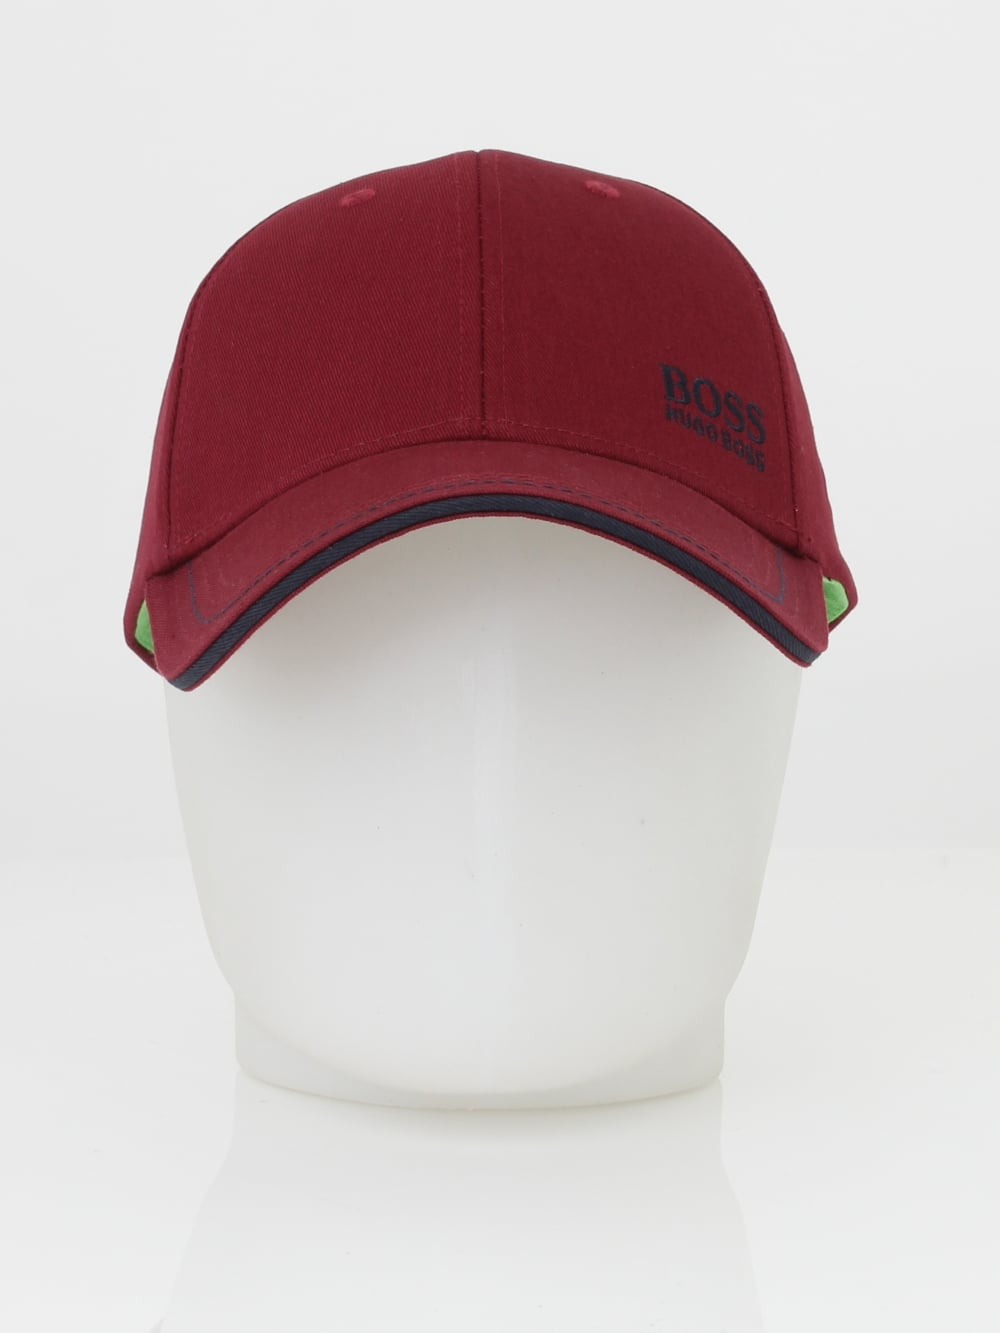 Boss - Boss Green Logo Cap 1 in Medium Red - Northern Threads 106e4b0dec8